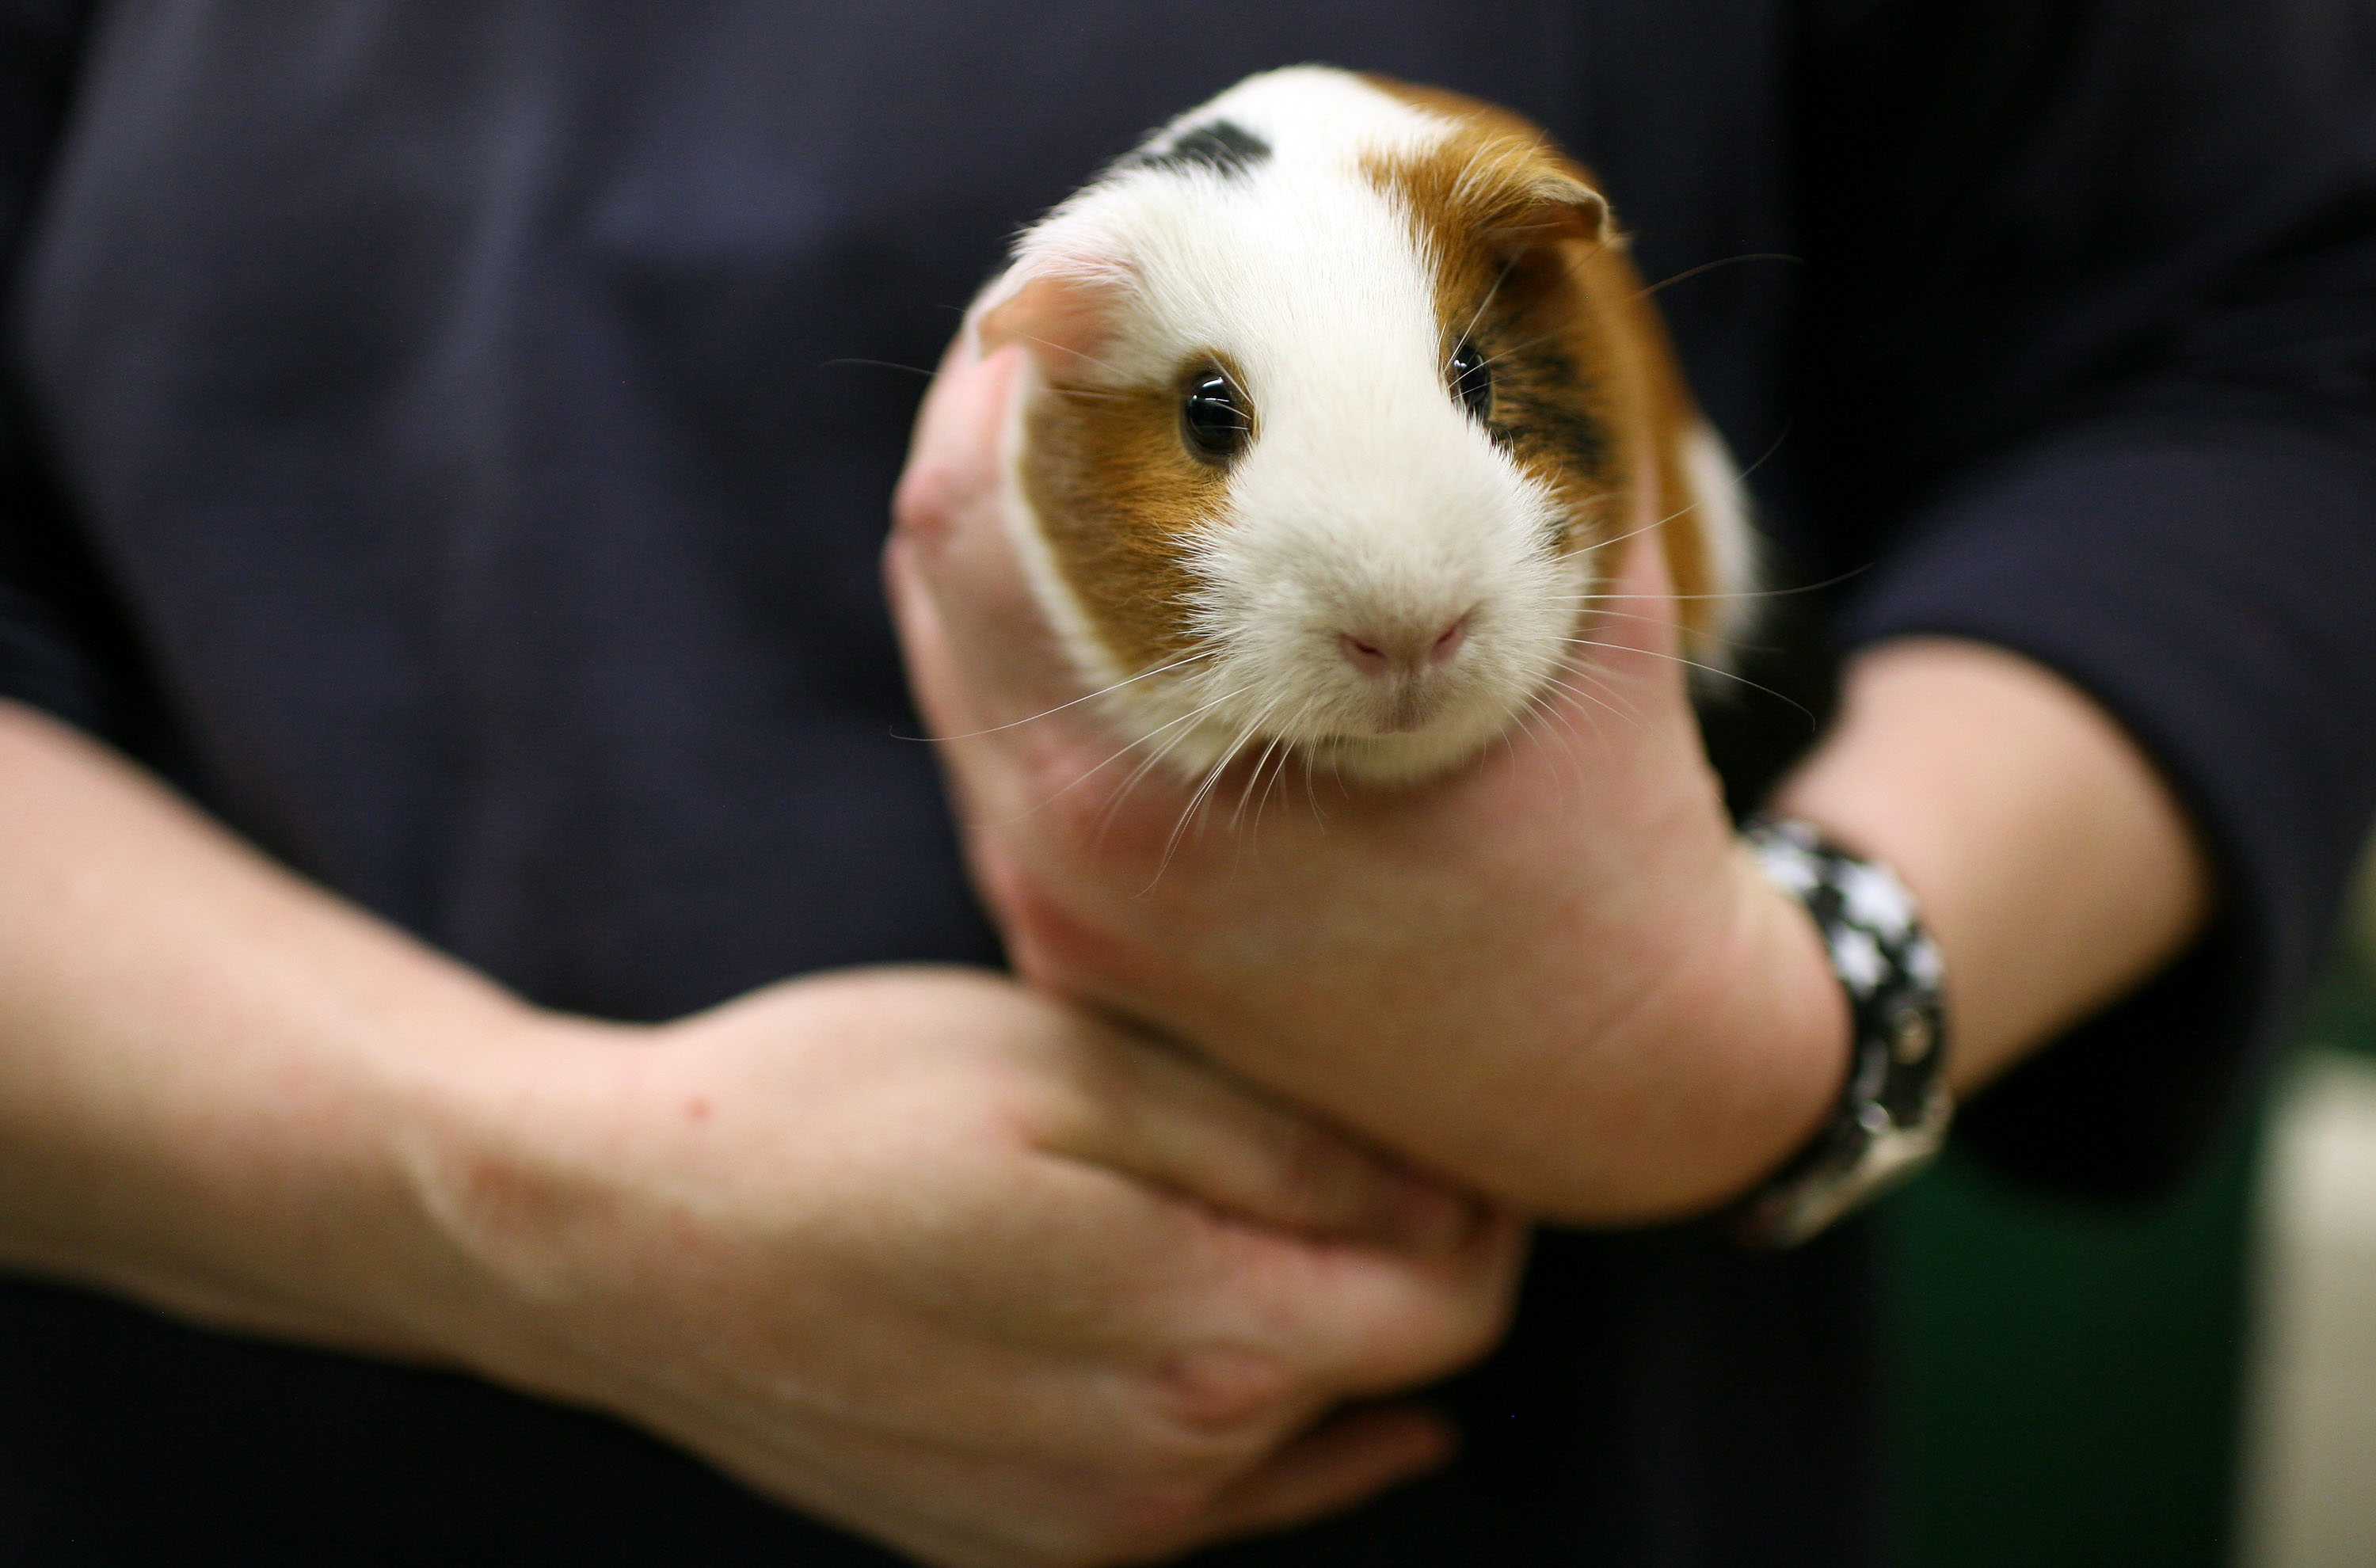 Guinea pig